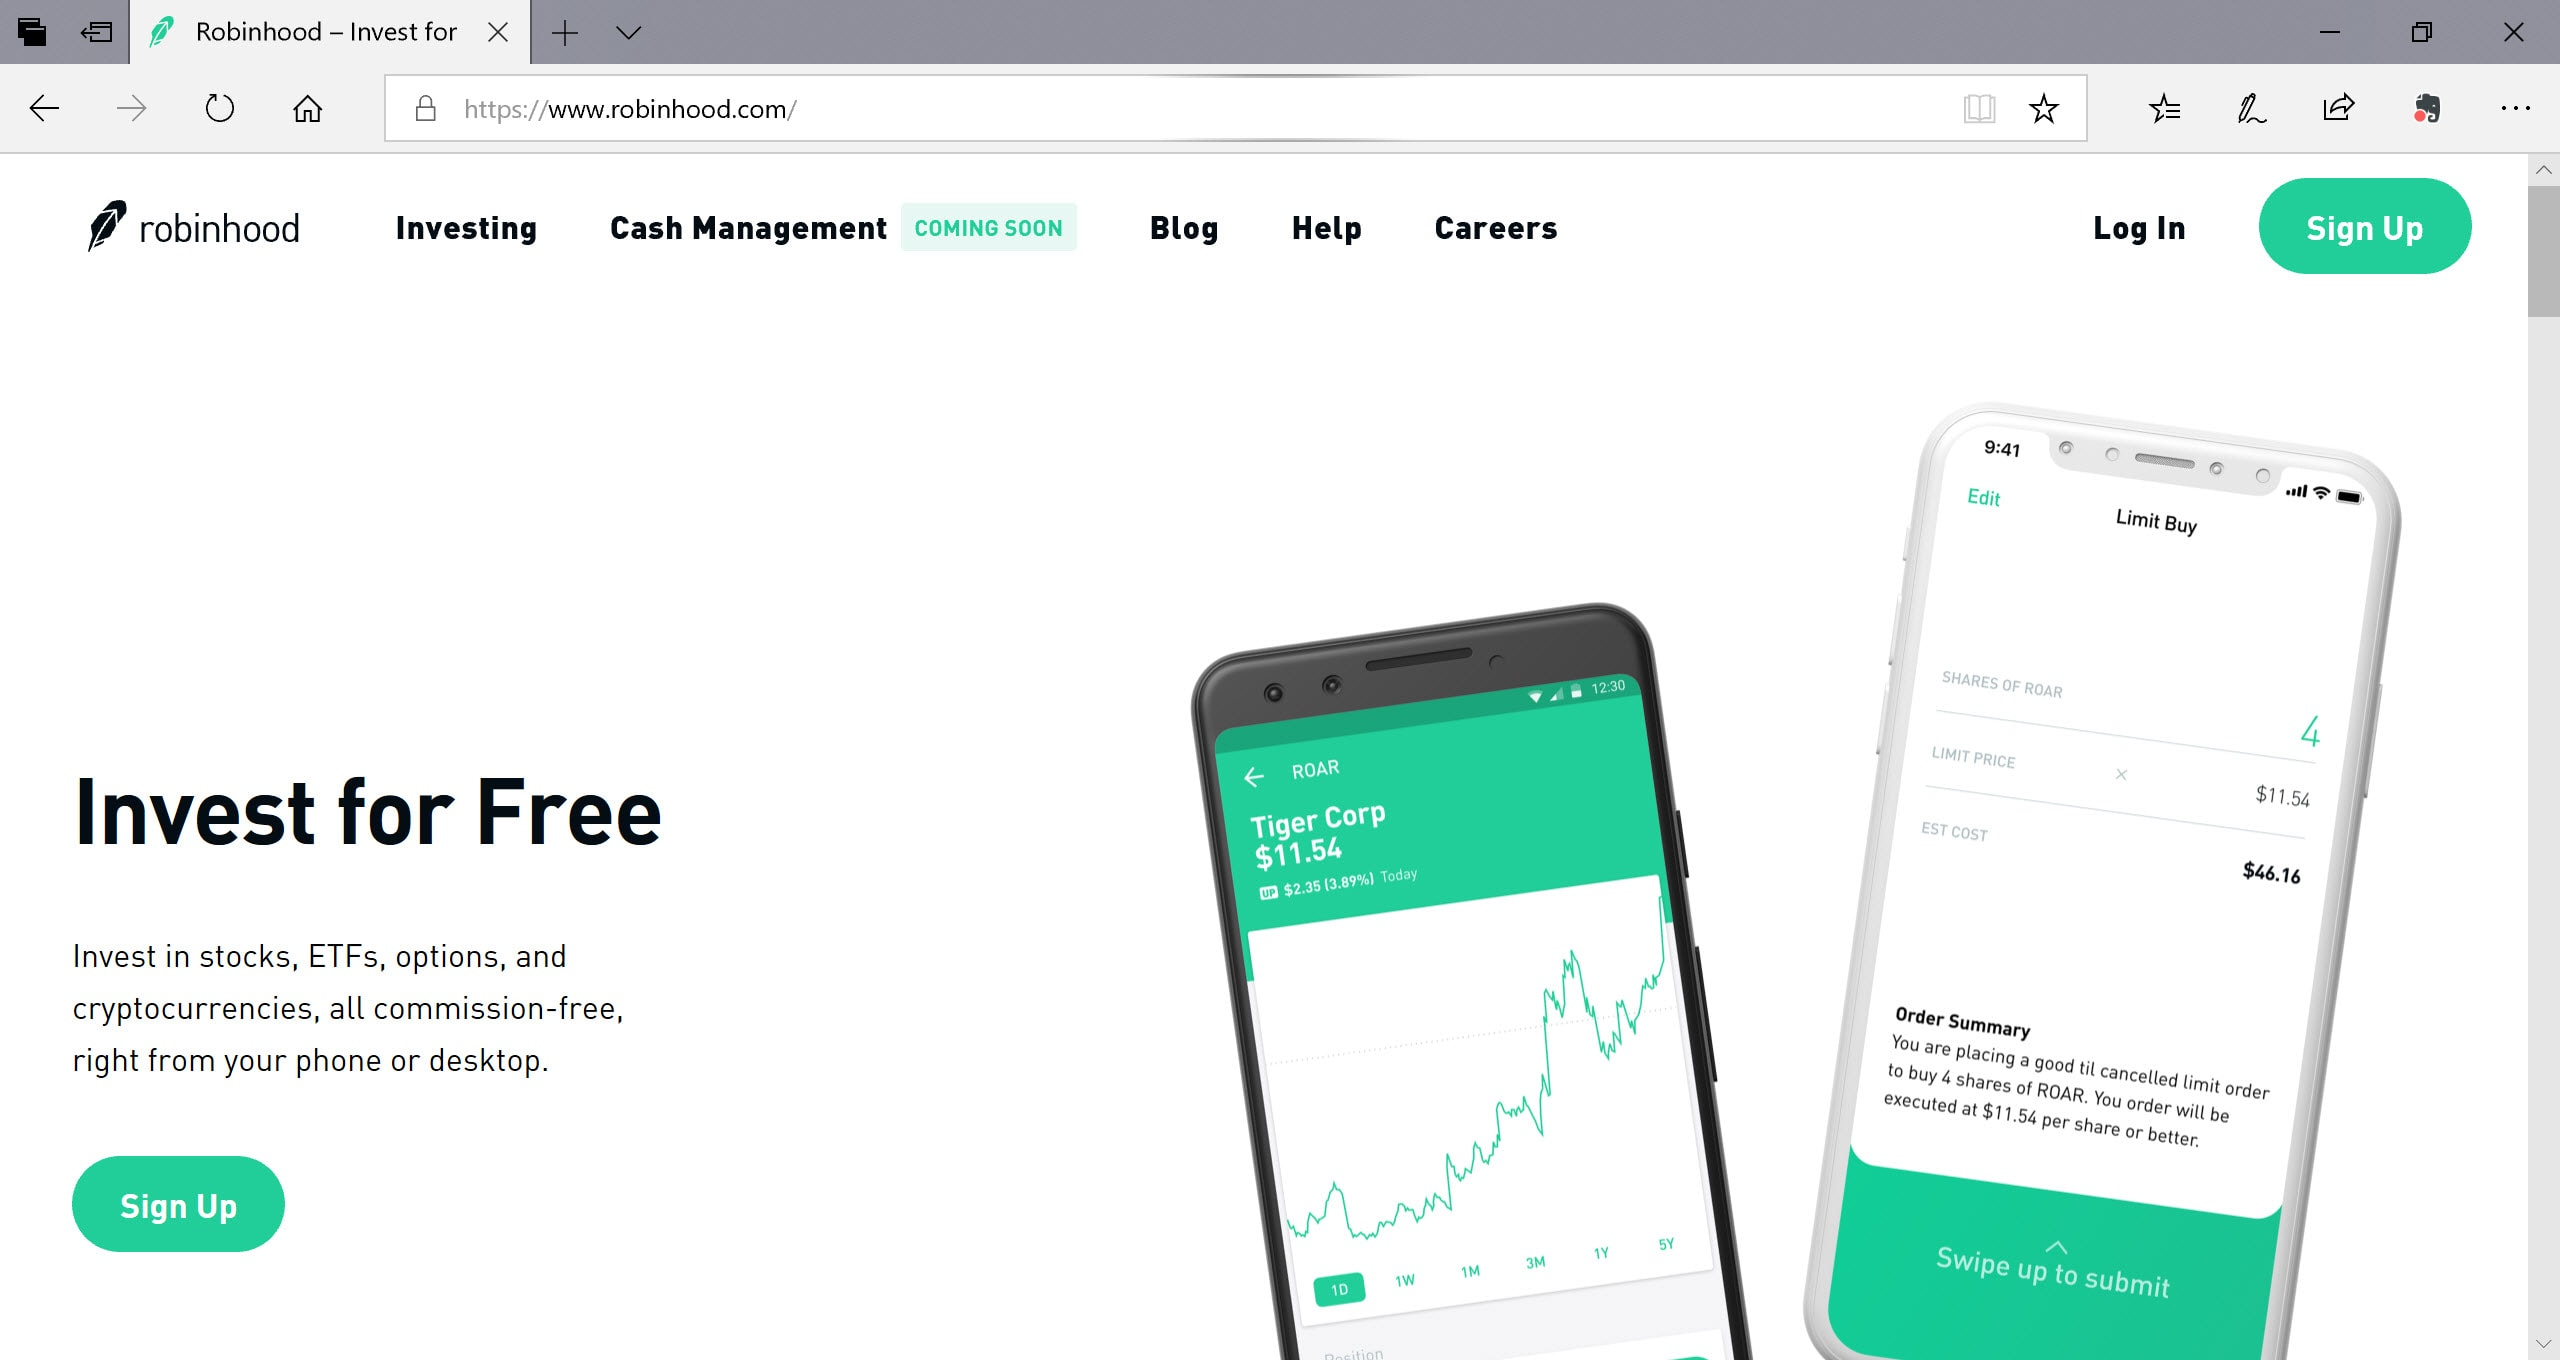 Lease Robinhood